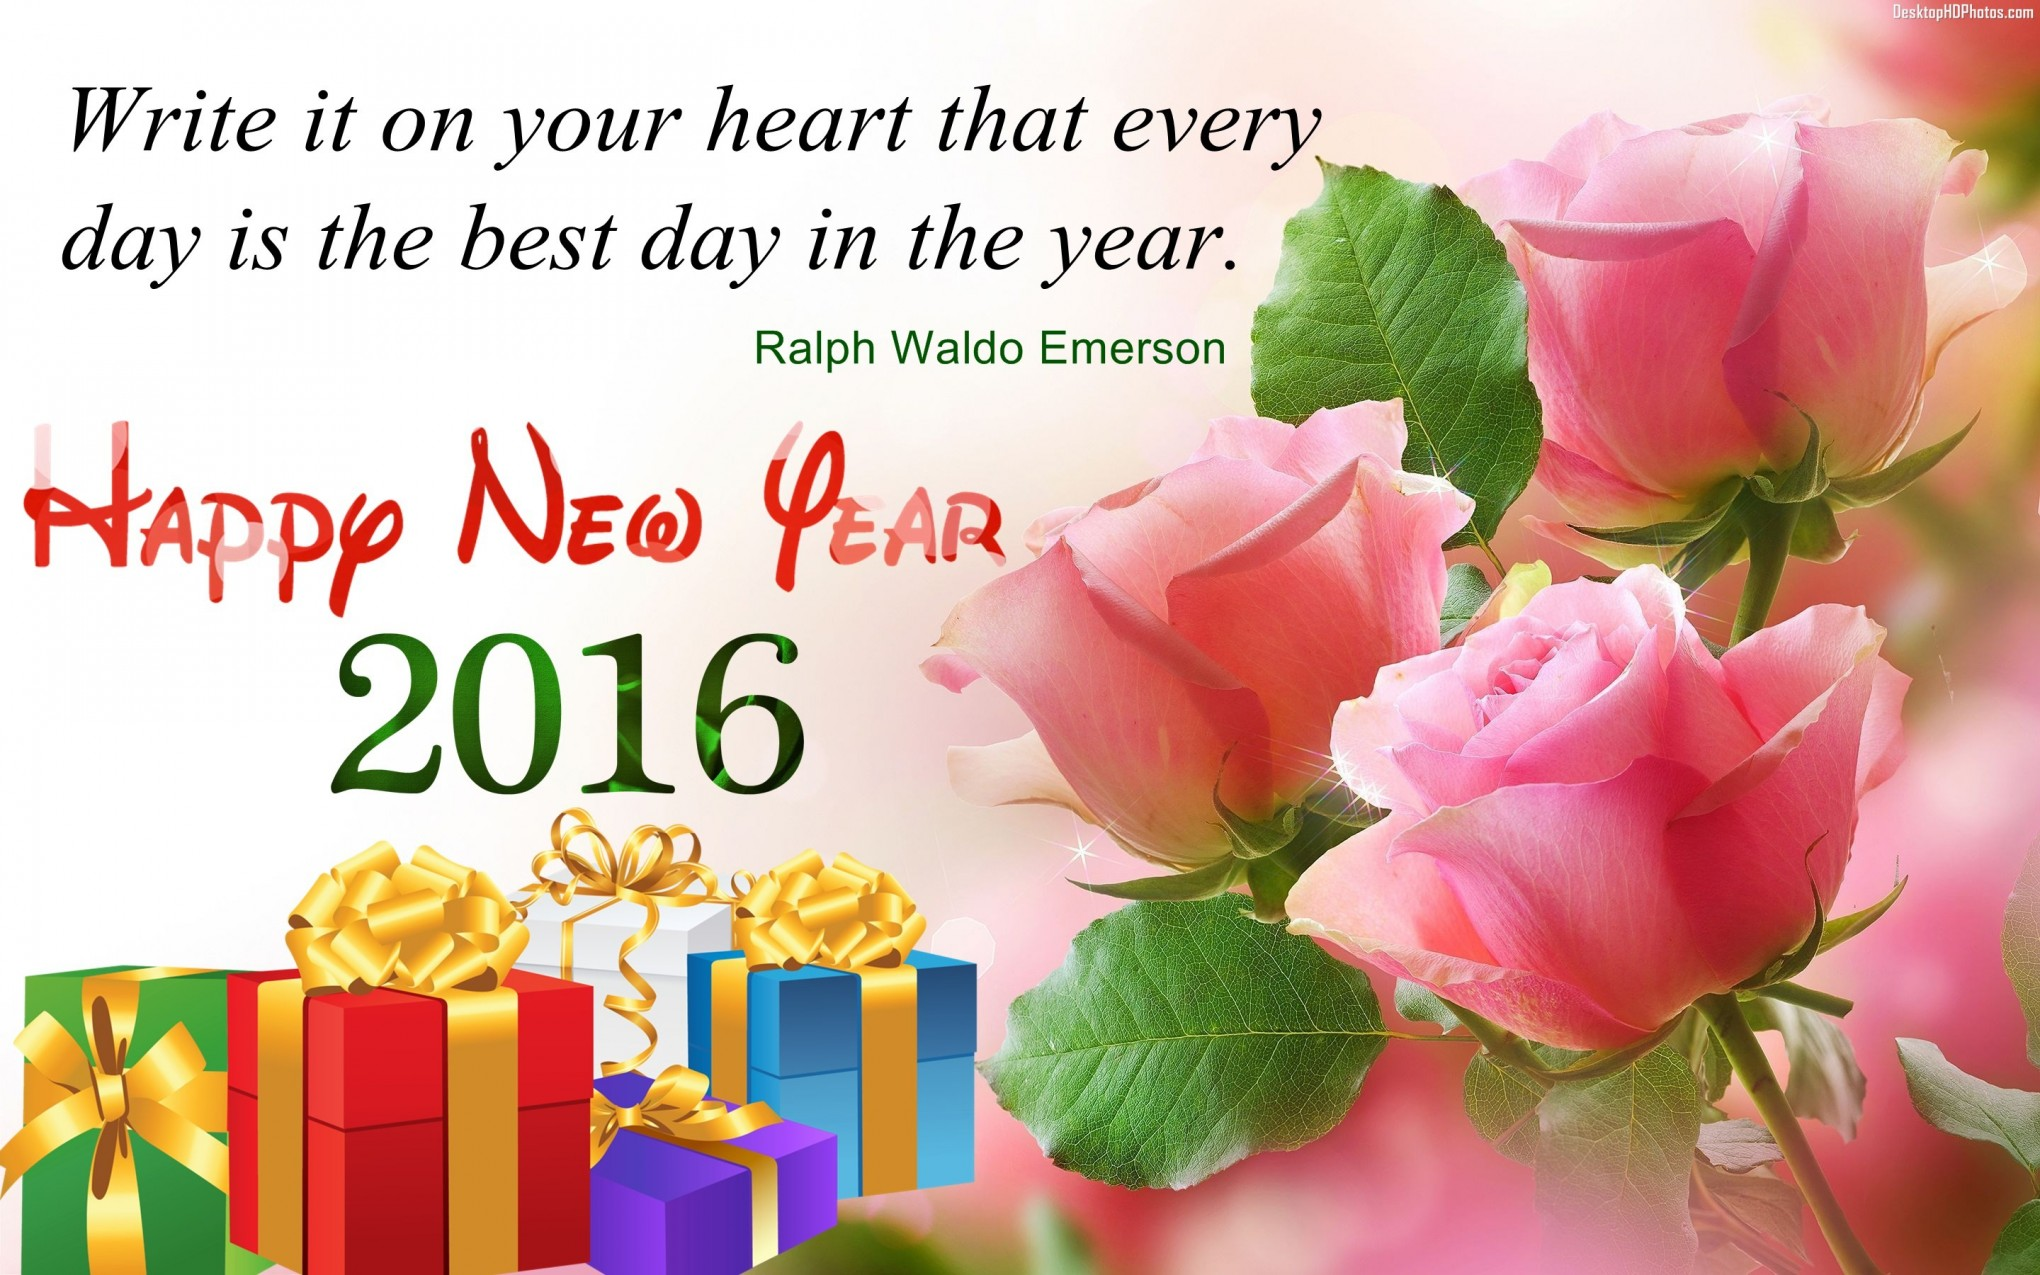 Happy new year wsffm womans sports and fitness foundation happy new year 2016 quotes photos kristyandbryce Images